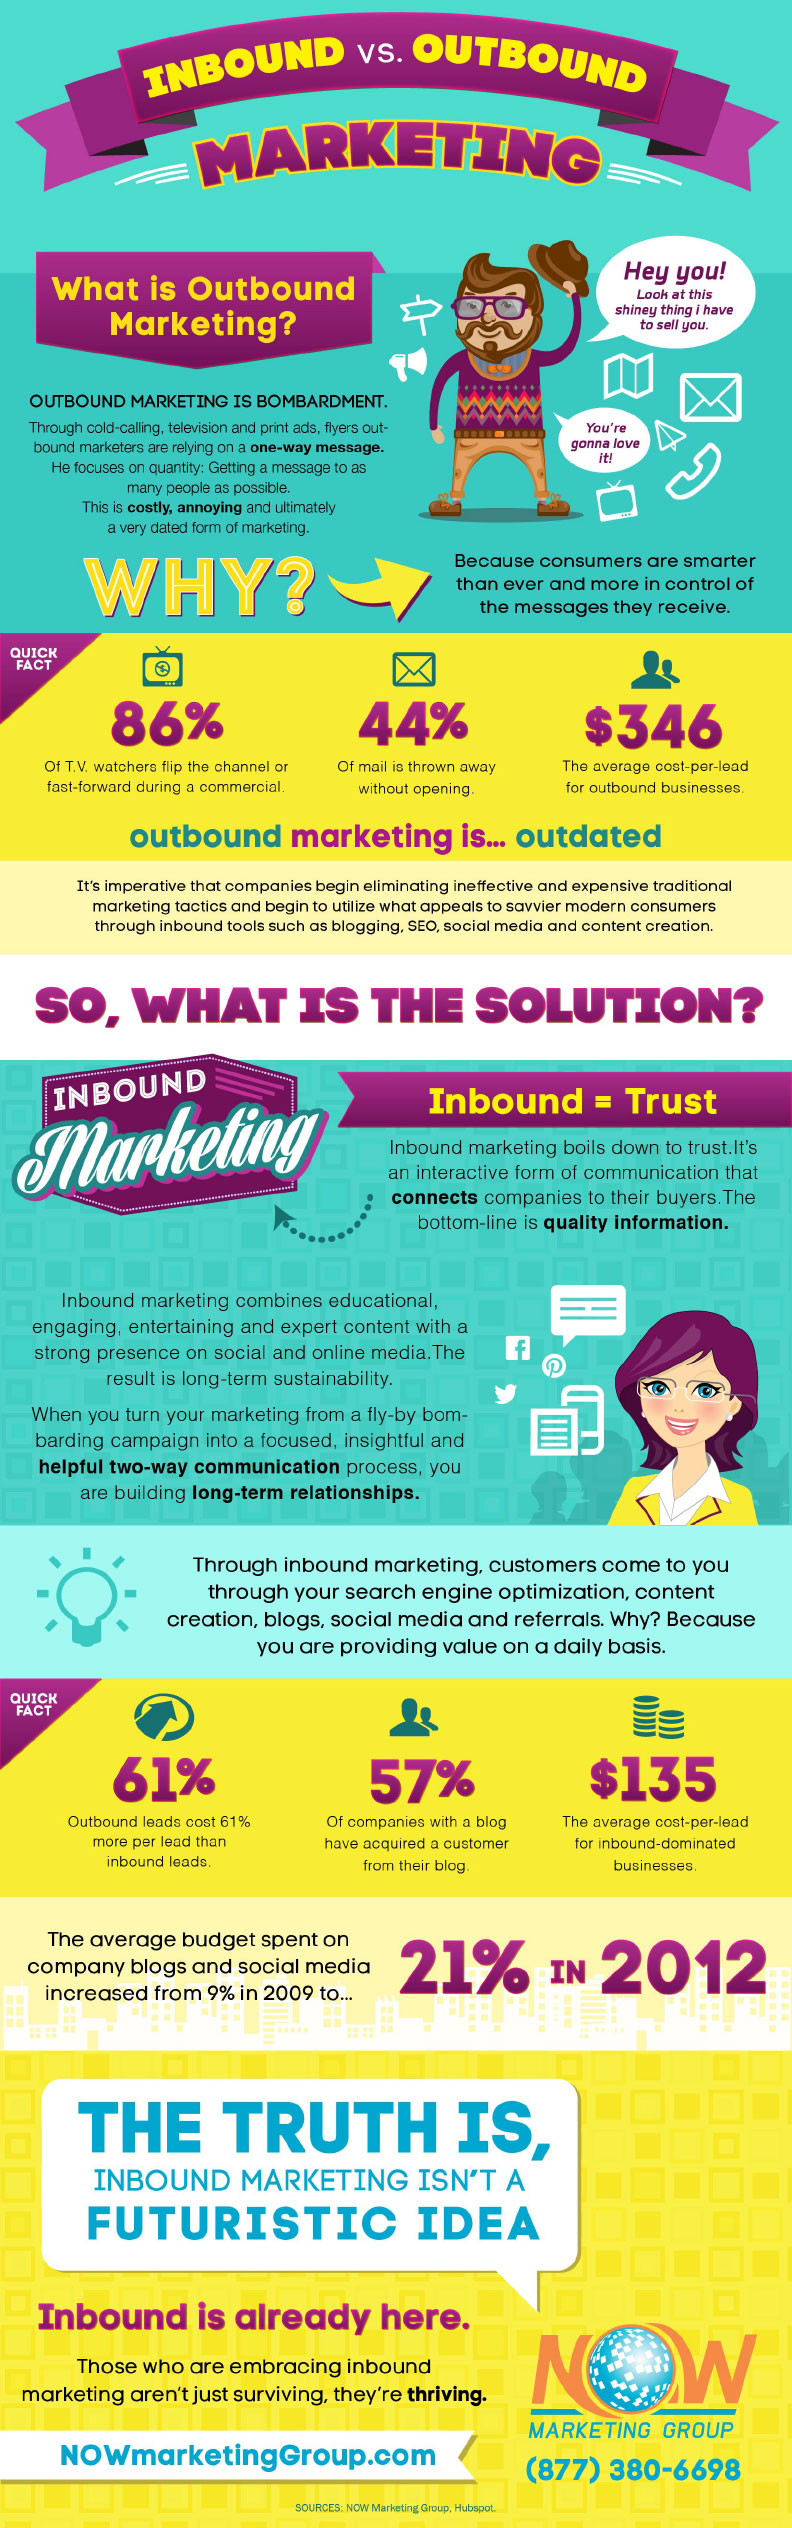 Outbound Marketing Email Outbound Marketing Infographic